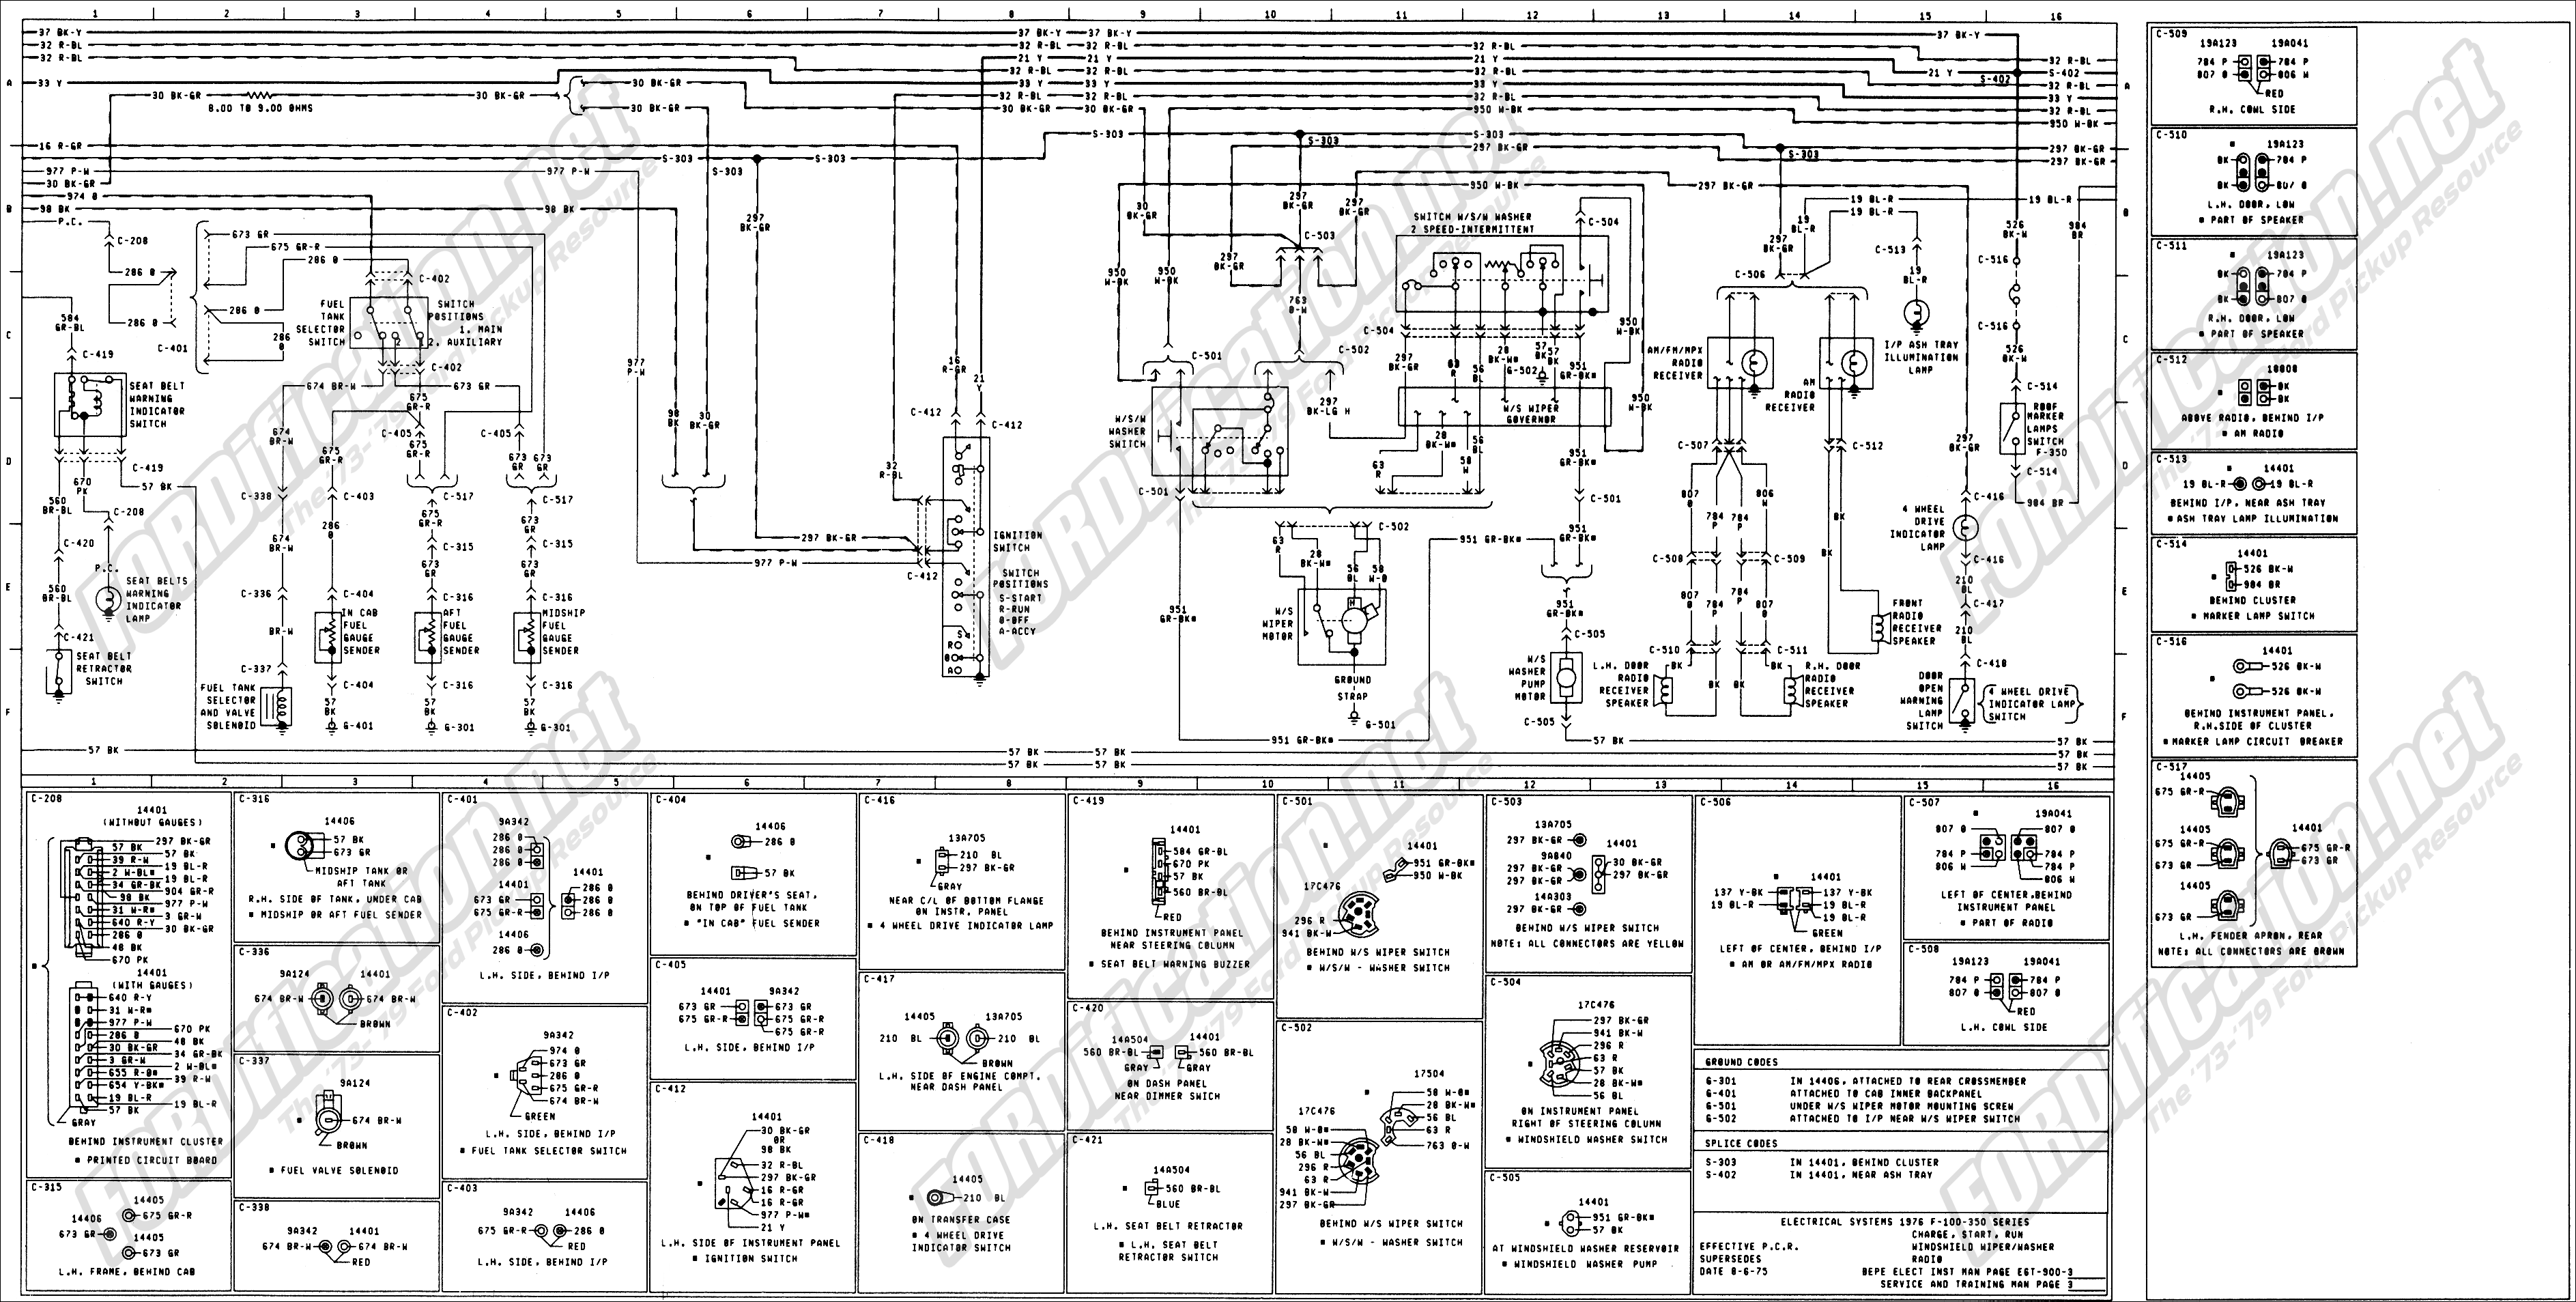 2002 Ford E150 Wiring Diagram Libraries 1992 1973 1979 Truck Diagrams U0026 Schematics Fordification Net2002